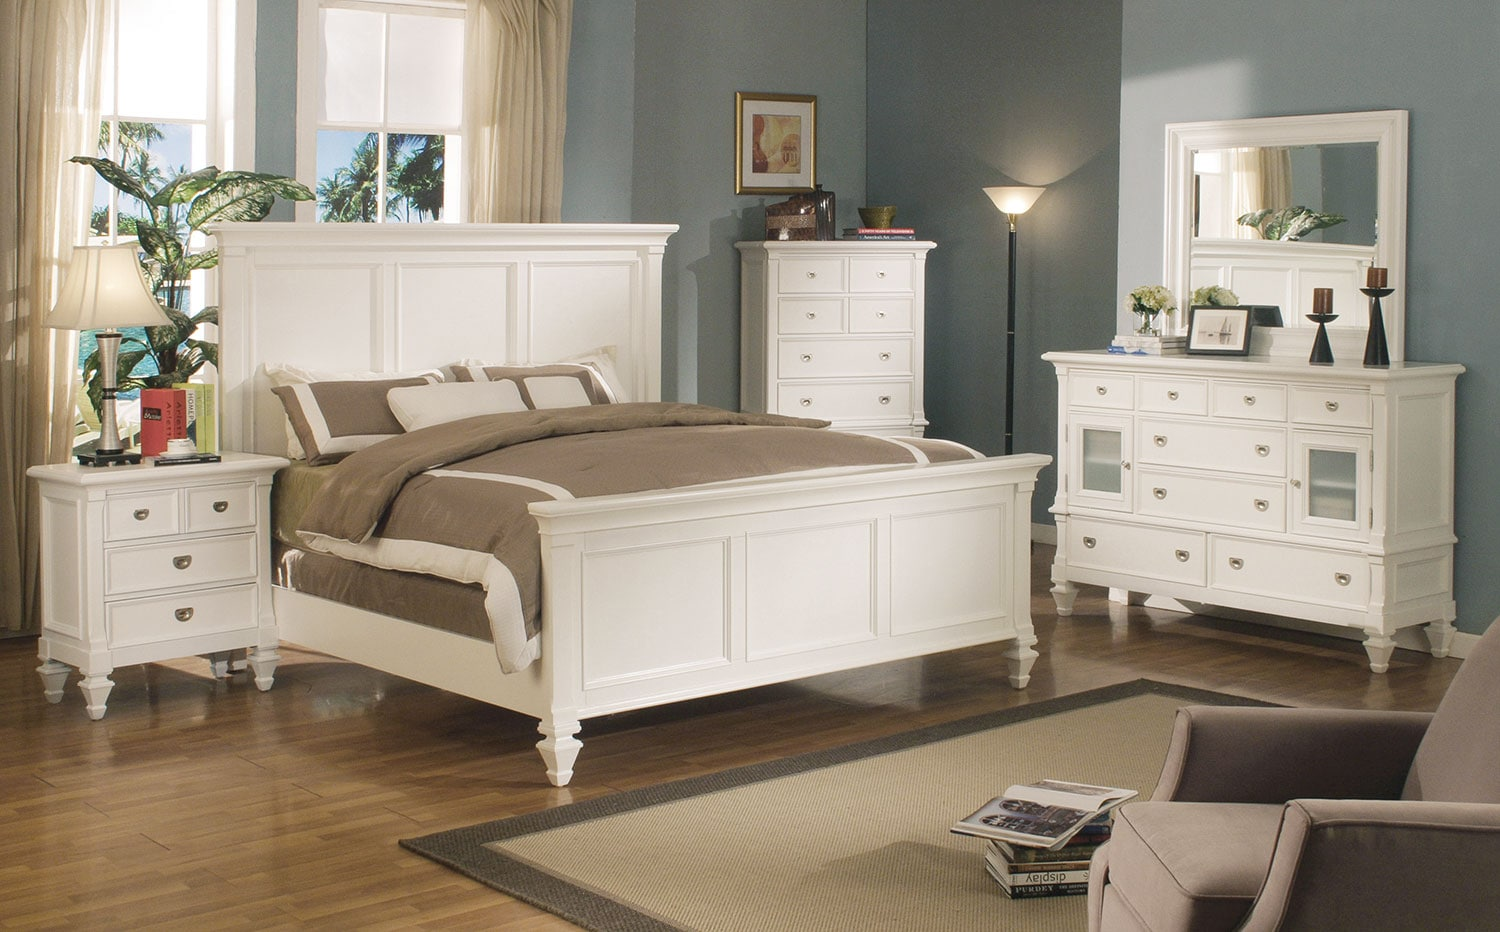 bedroom levin furniture 12080 | 478826 fit inside 7c320 320 composite to center center 7c320 320 background color white